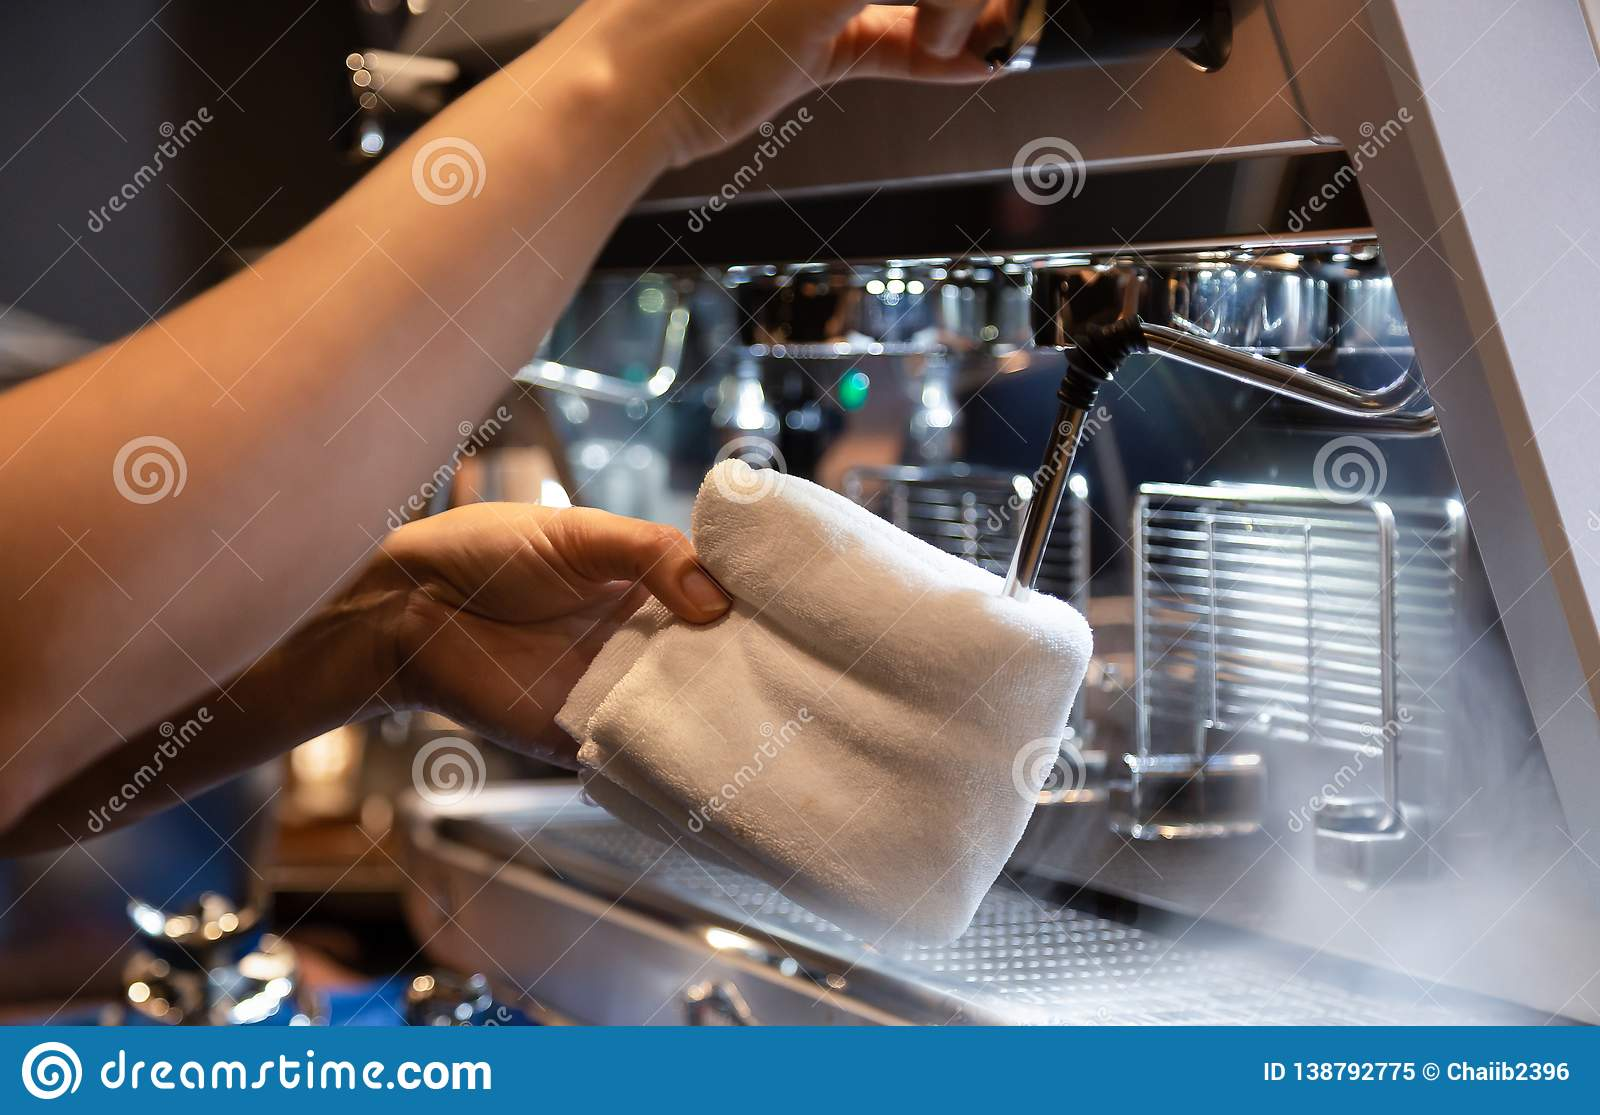 Hand of barista cleaning milk frother of coffee machine to be ready for milk frothing